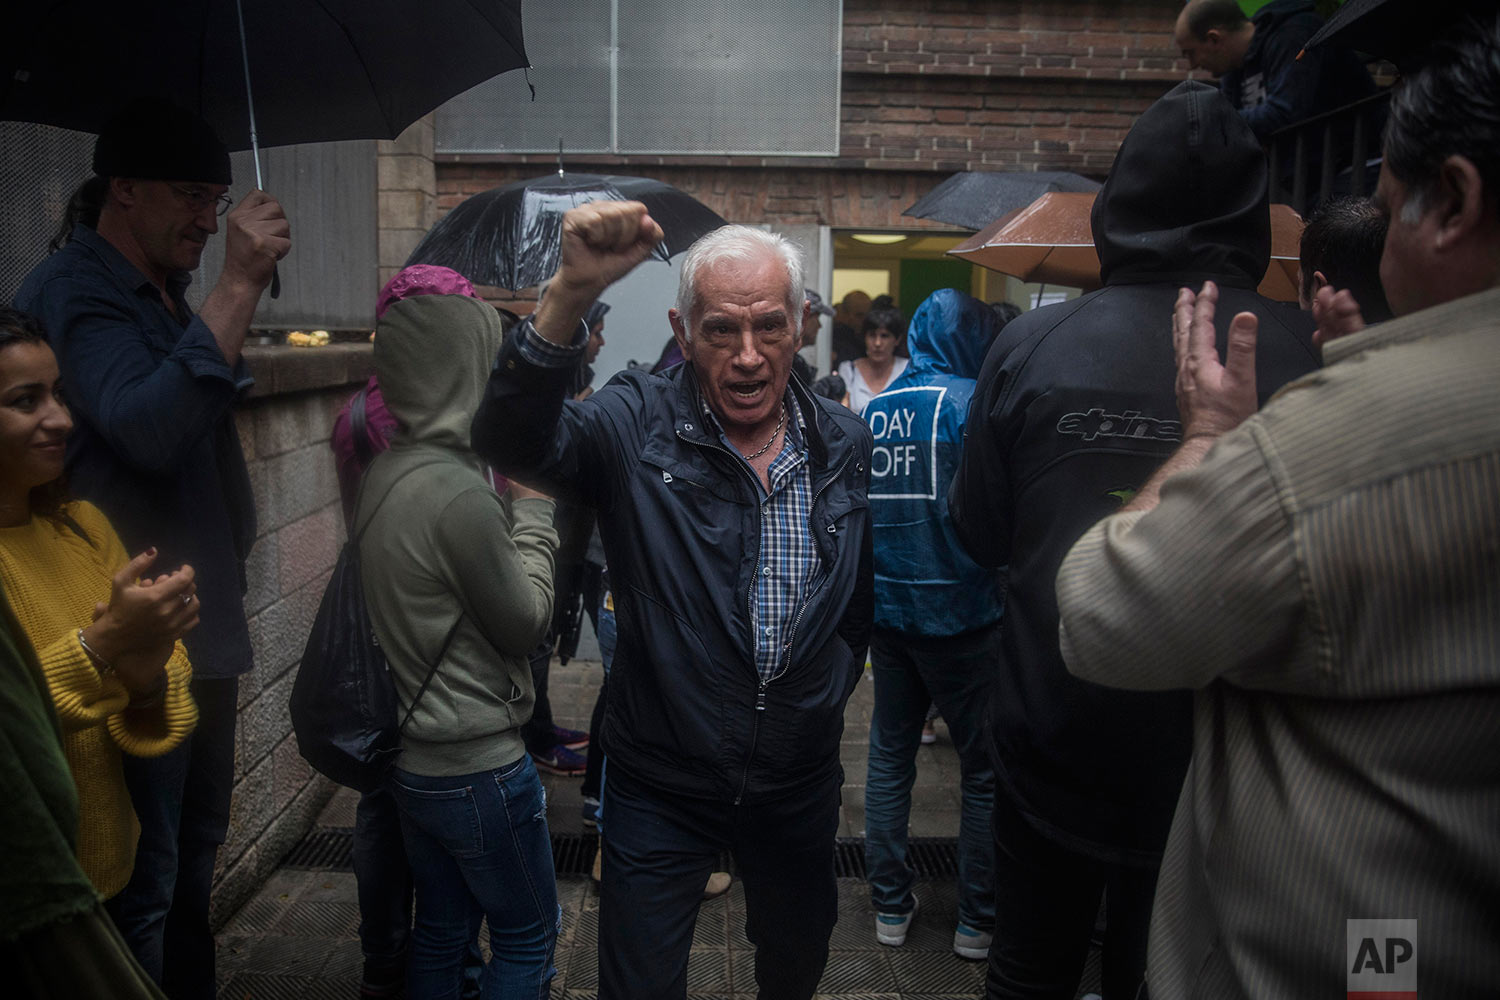 A man reacts after voting at a school listed to be a polling station by the Catalan government in Barcelona, Spain, Sunday, Oct. 1, 2017. Polling has begun in a banned referendum on Catalonia's independence, with the first voters casting ballots amid cheers in some of the designated polling stations. (AP Photo/Santi Palacios)